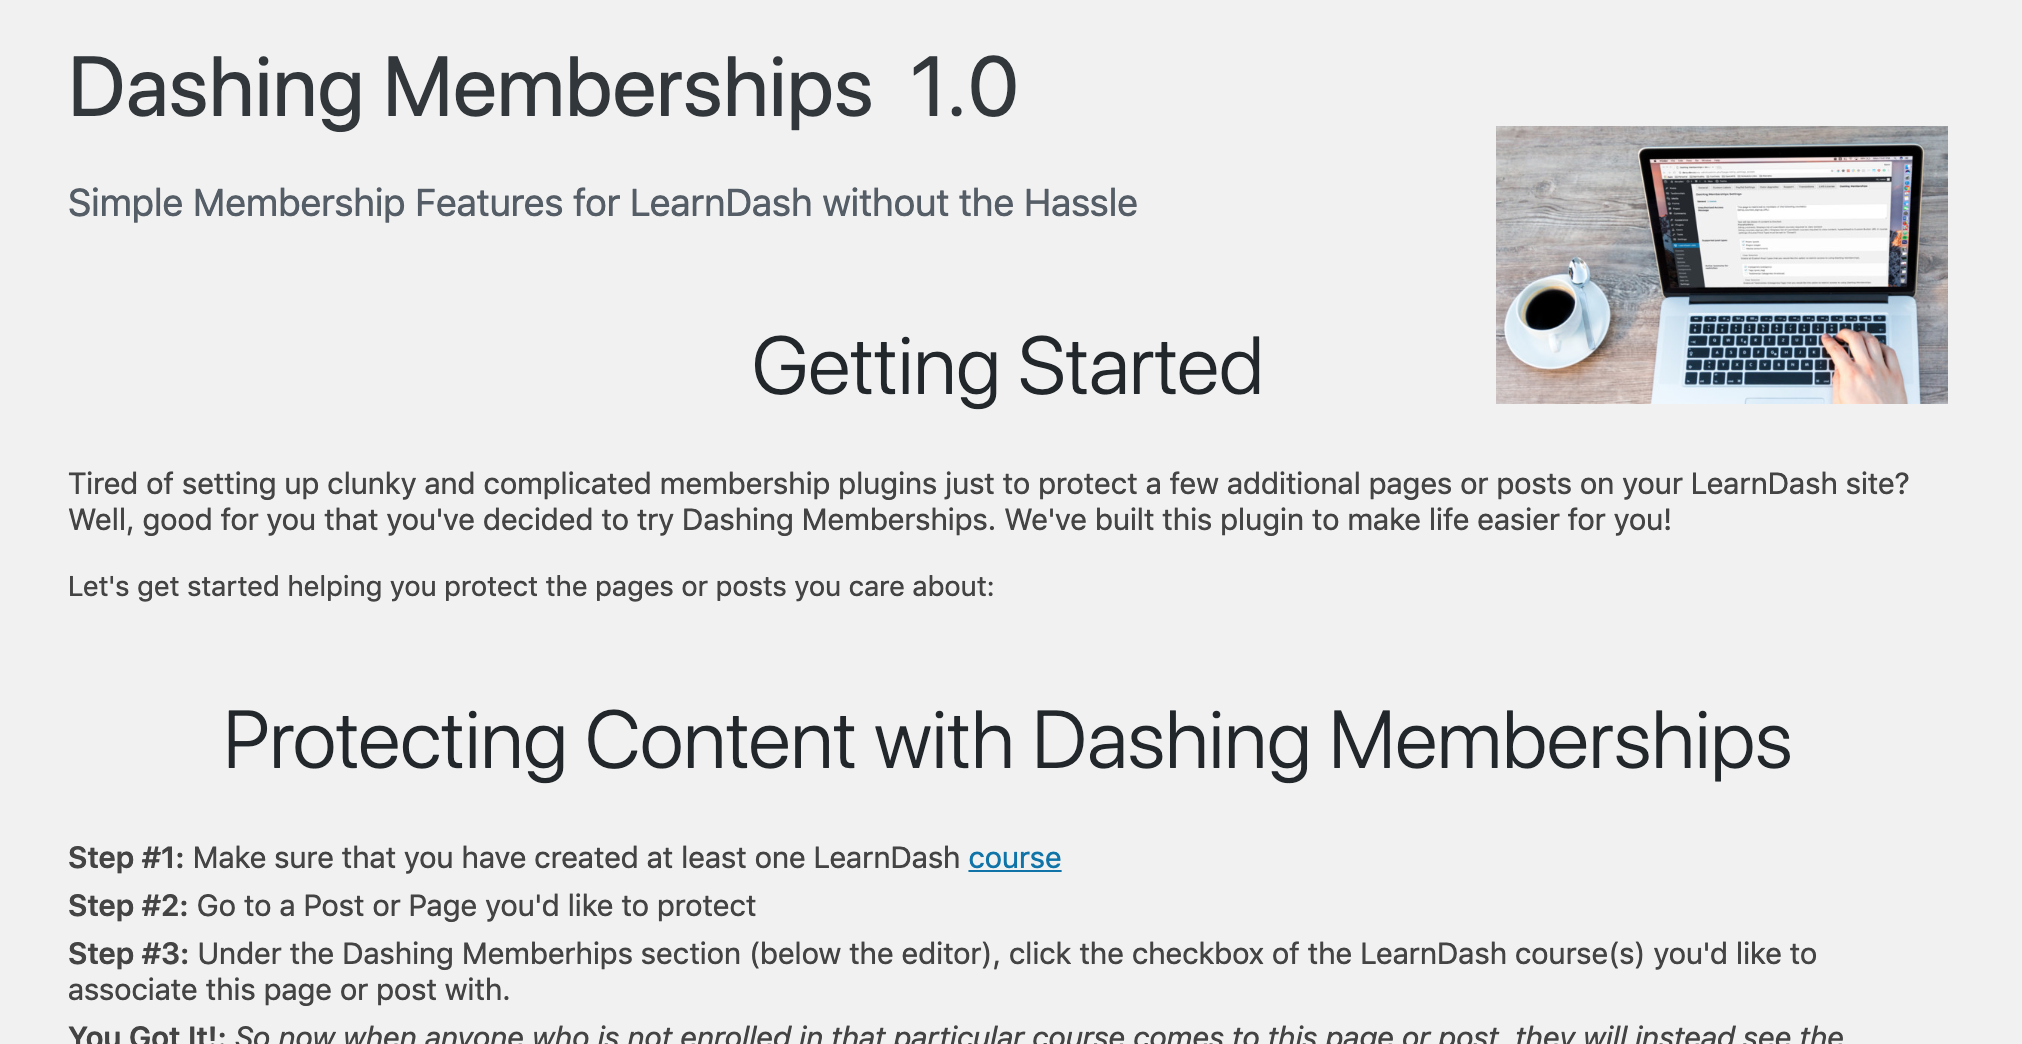 Dashing Memberships settings page